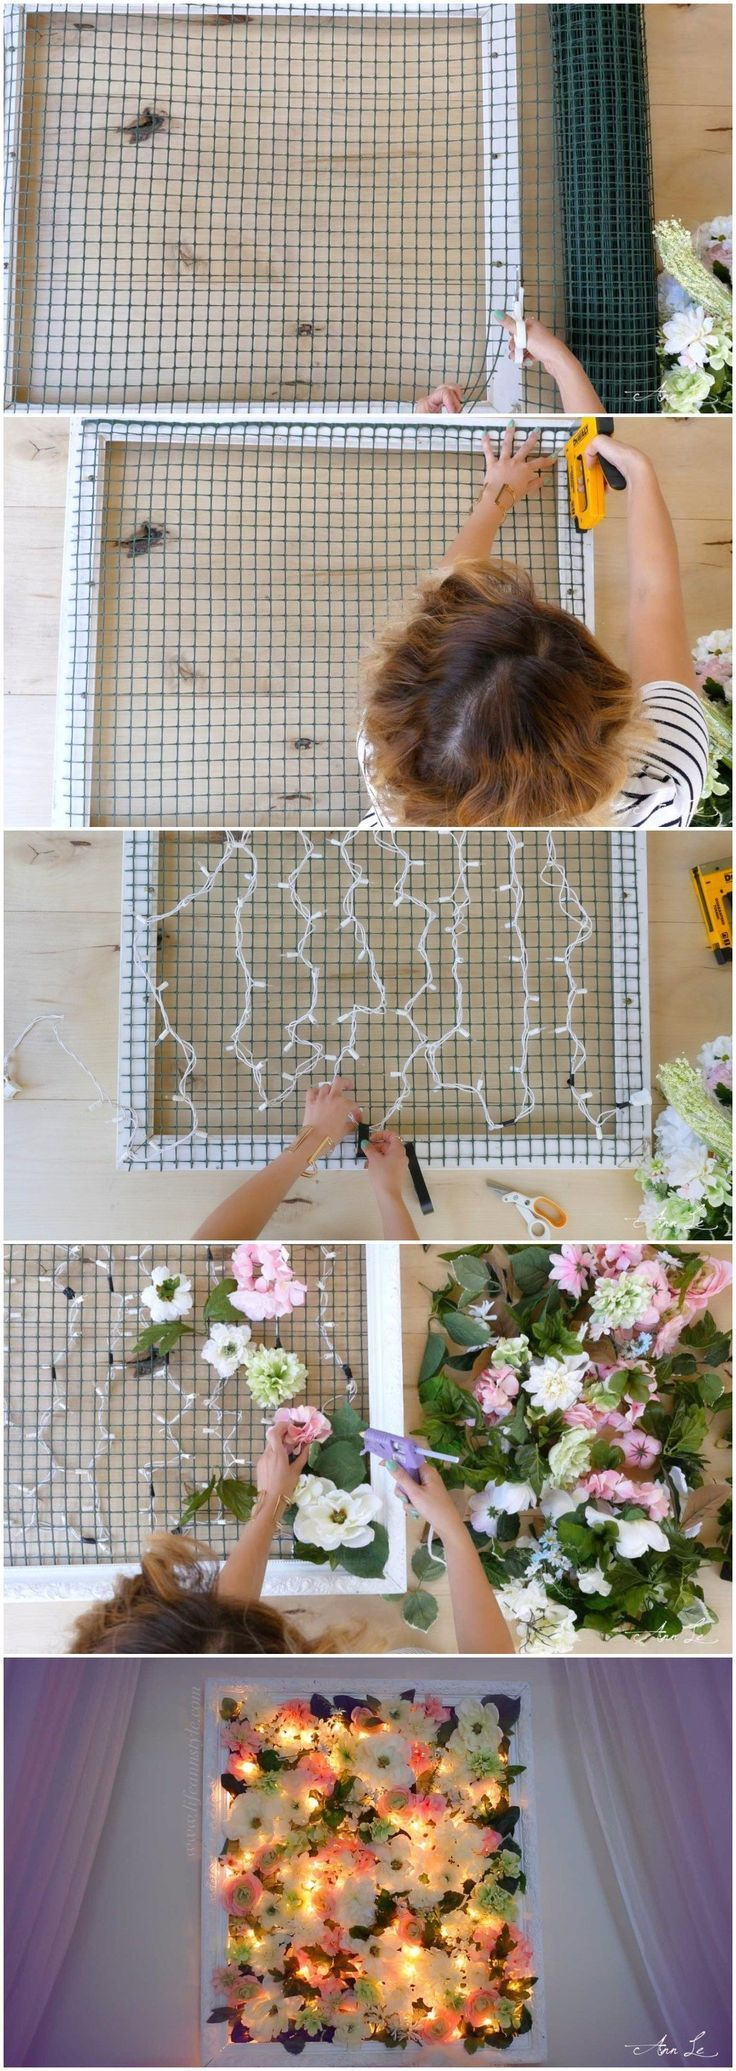 Decoration with Lights and Flowers – lifeannstyle.com – DIY Ligh